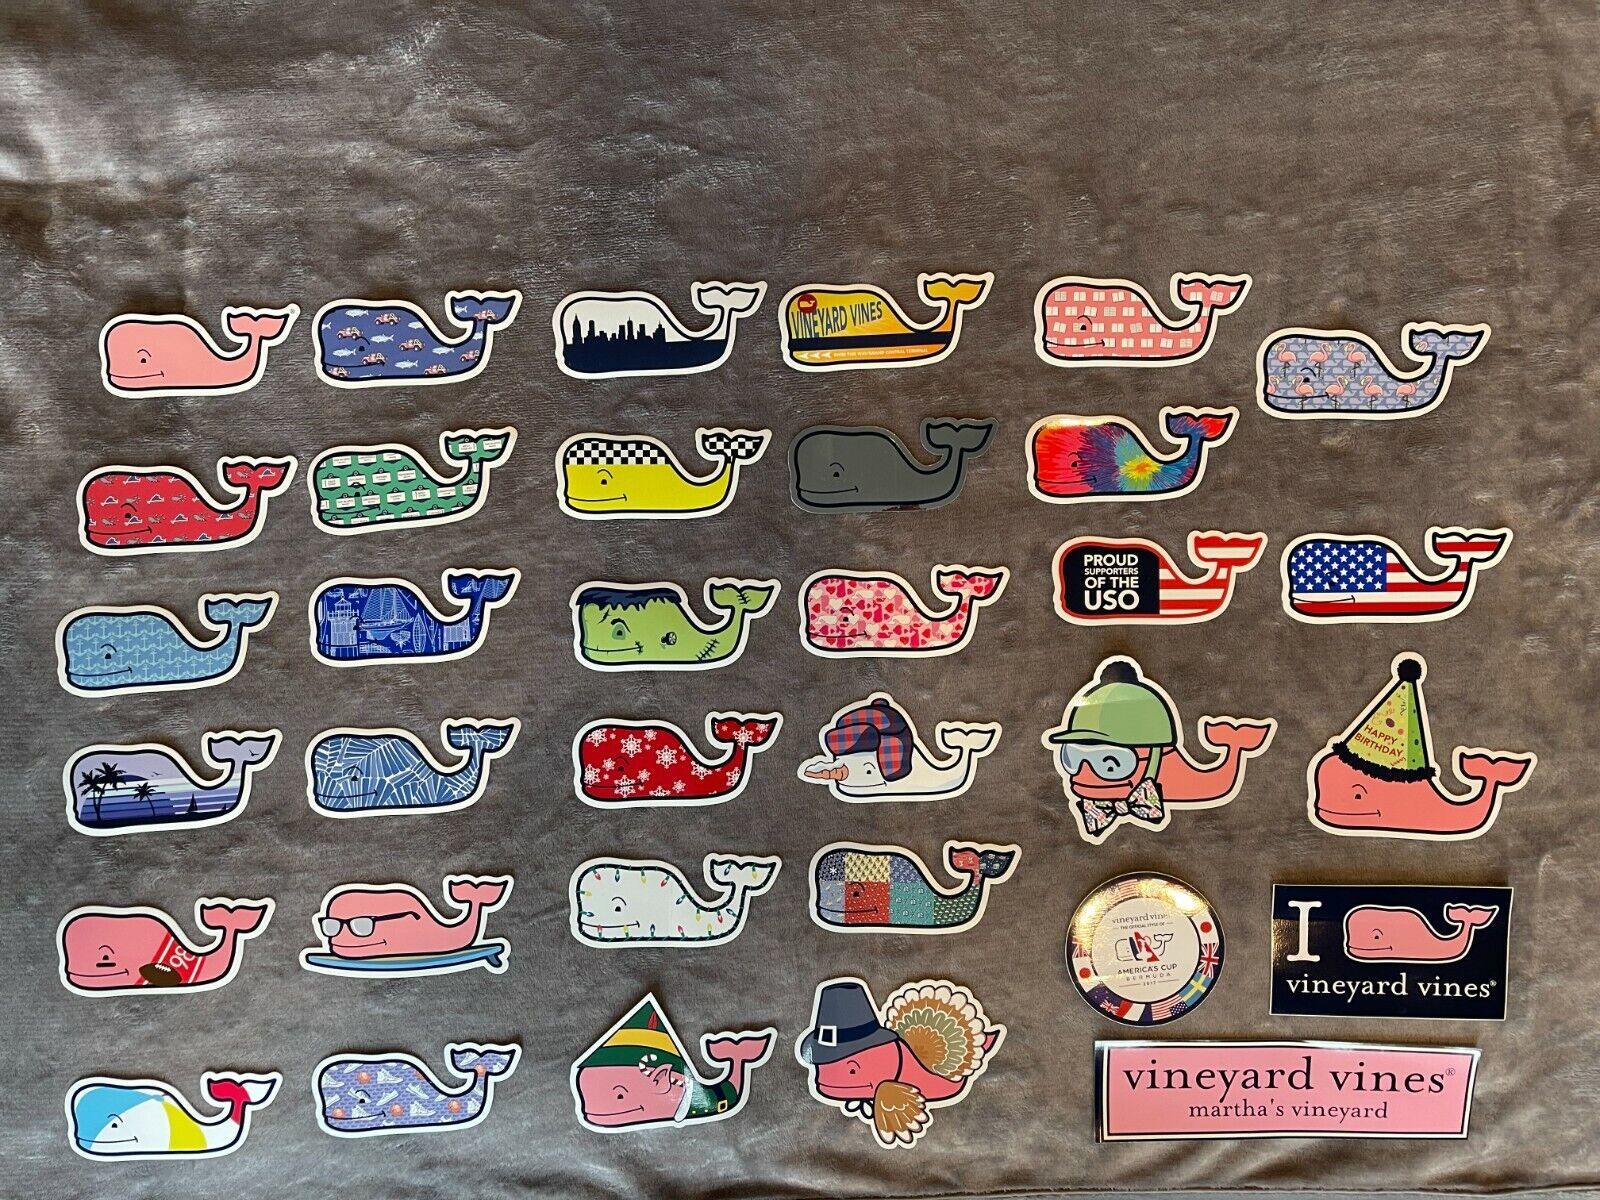 Home Decoration - UPDATED - Assortment Of 32 Vineyard Vines Stickers 100% Authentic & Rare